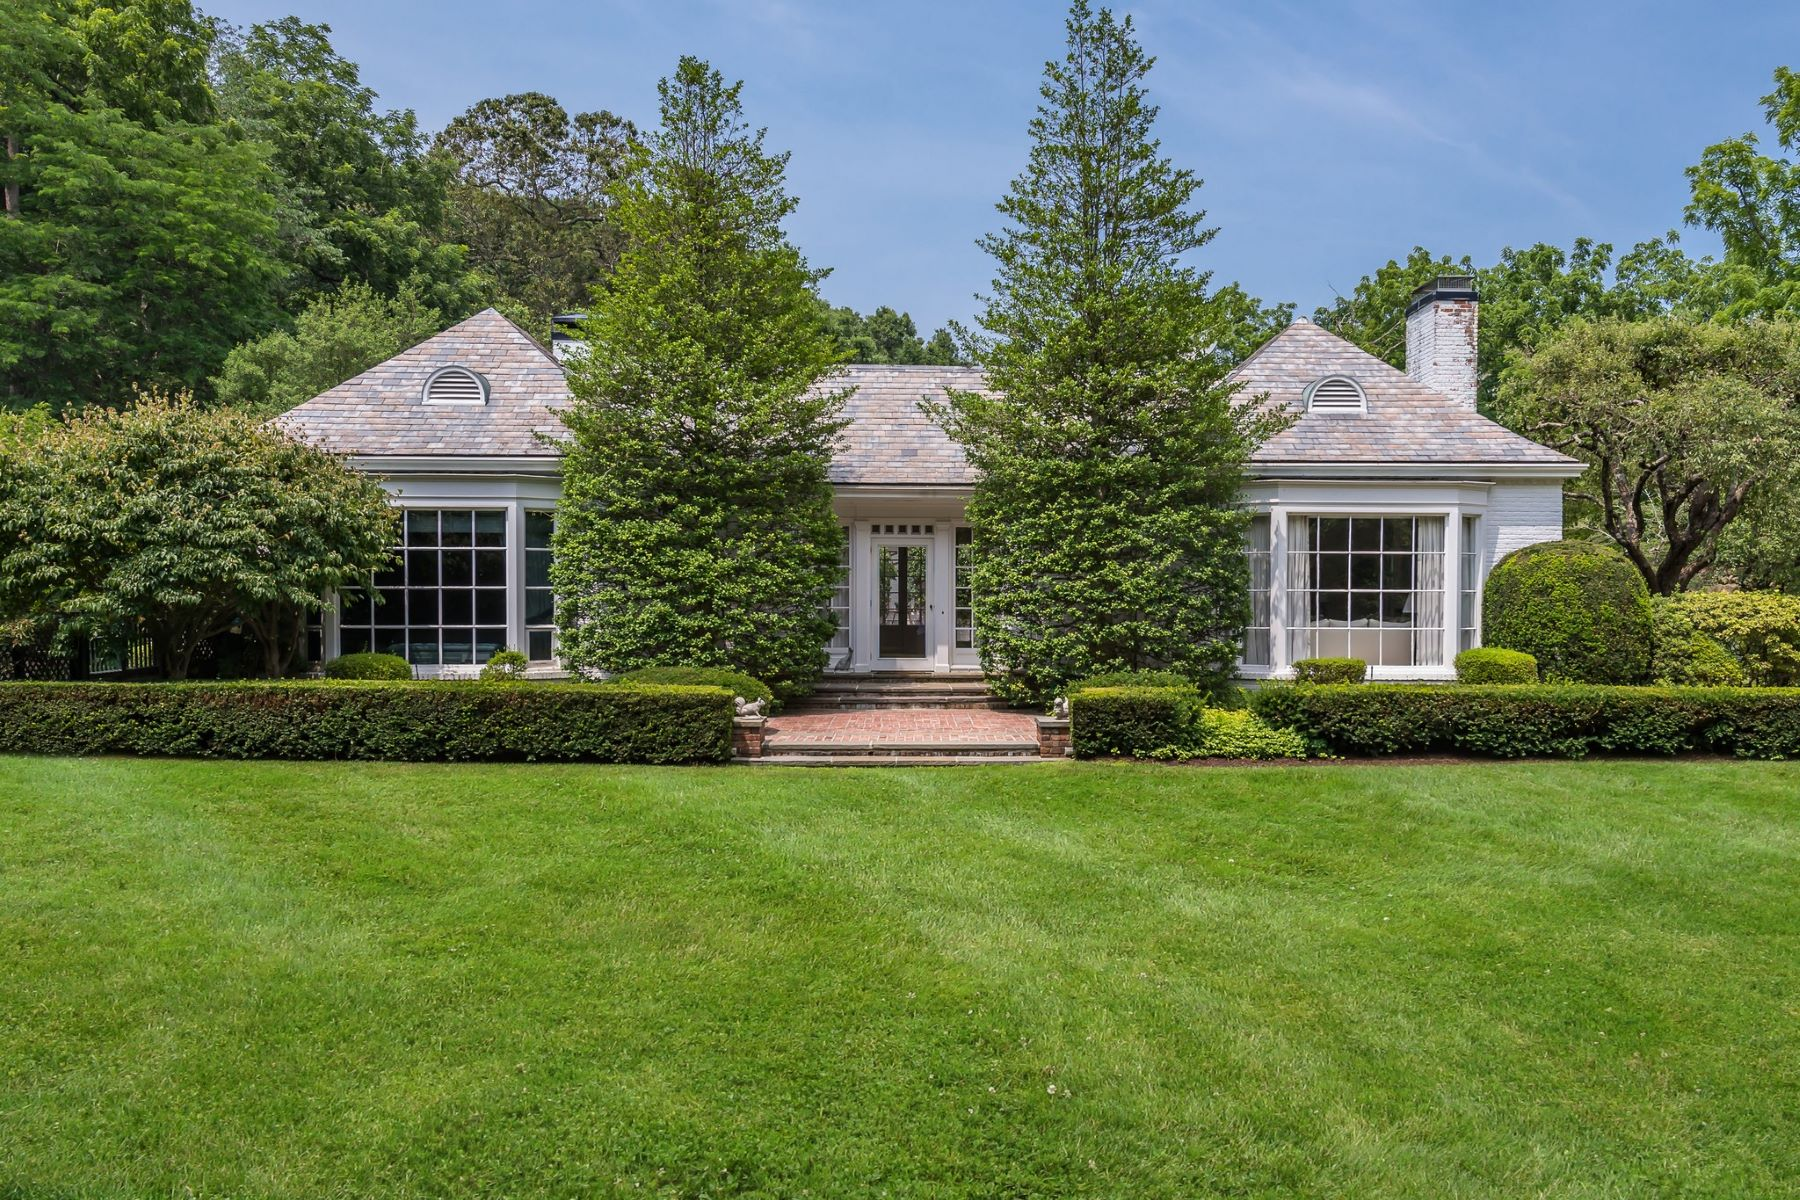 Single Family Homes for Sale at Locust Valley 1 Thorne Ln Locust Valley, New York 11560 United States